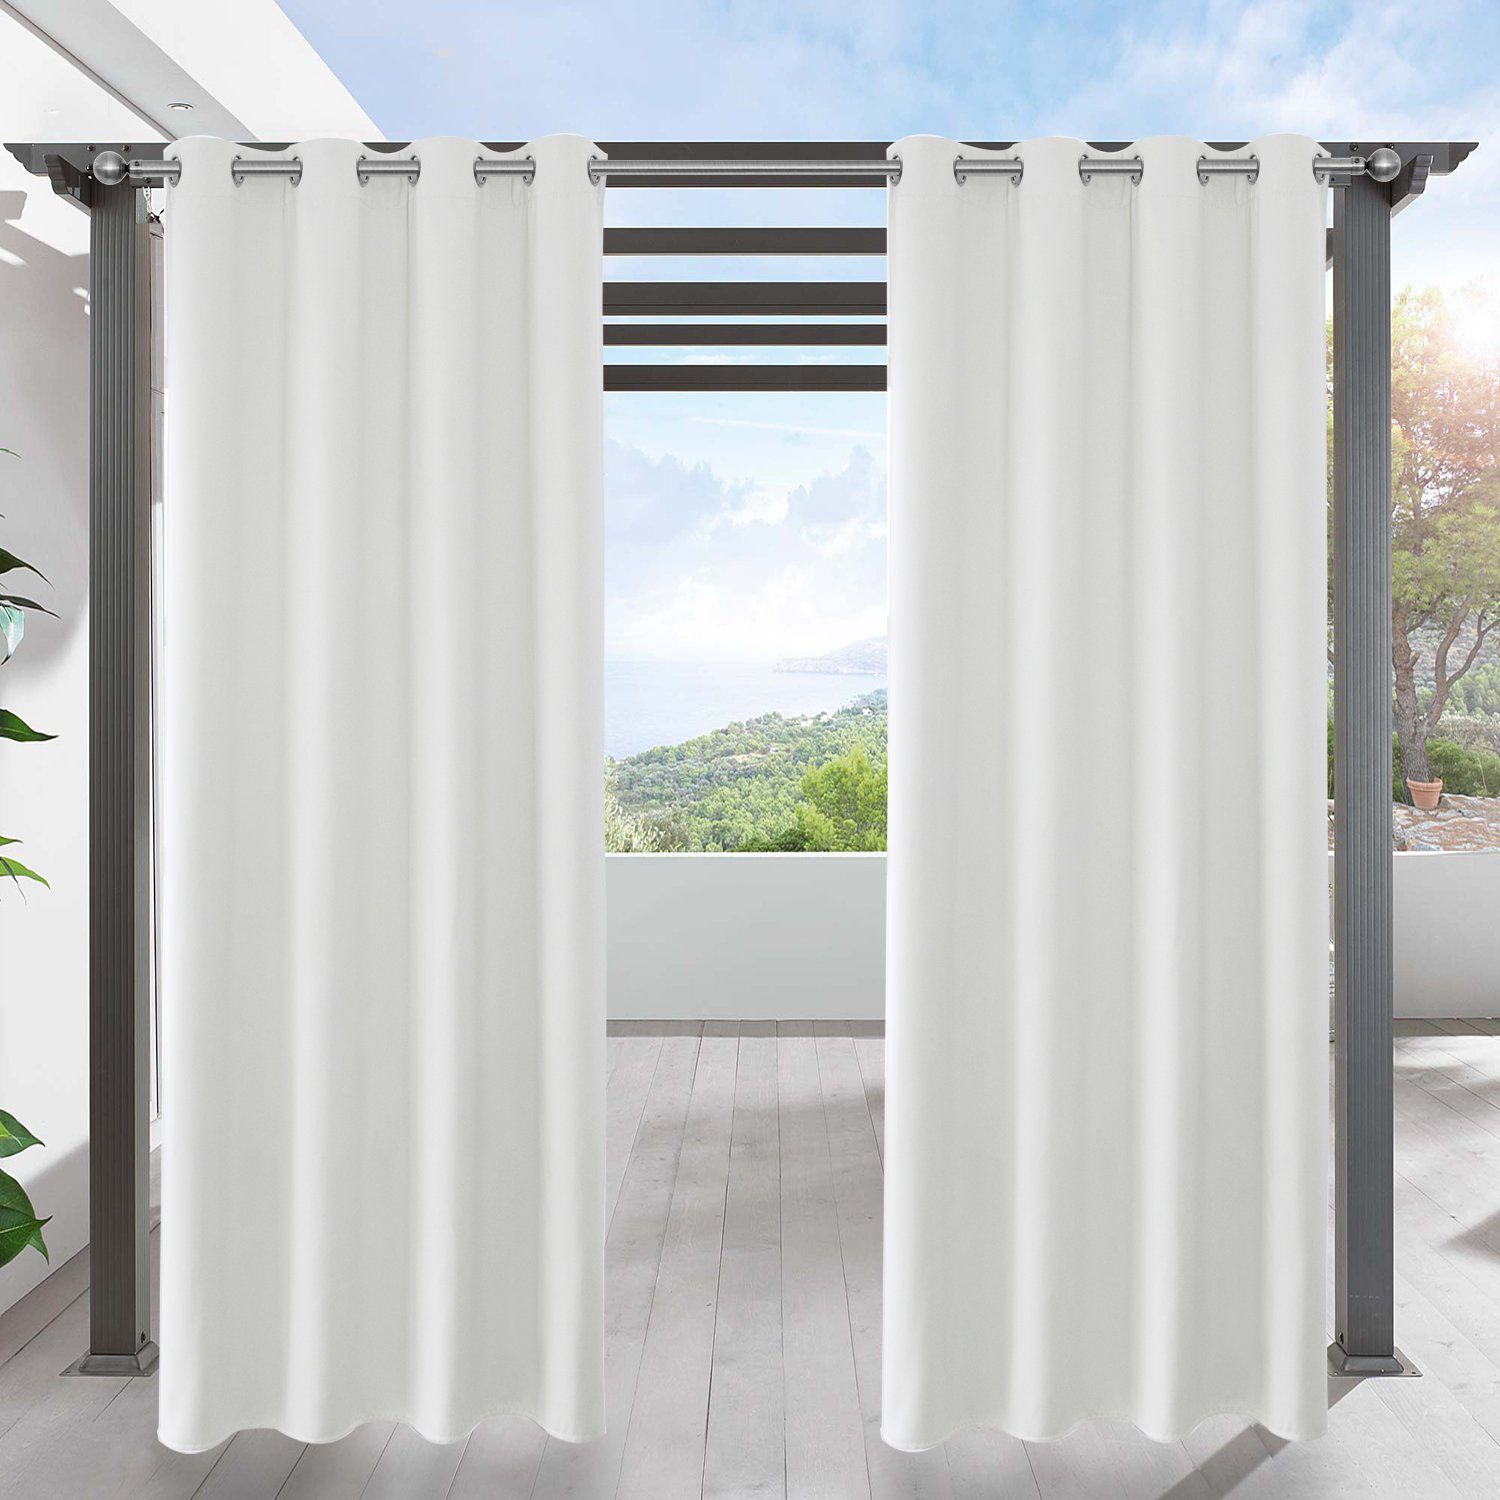 LIFONDER Privacy Porch Outdoor Curtains - Outdoor Deck Décor Grommet Thermal Insulated Blackout Patio Sun Shade/Blind / Drapery Pergolas Gazebos, 52'' x 84'', Greyish White,1 Panel